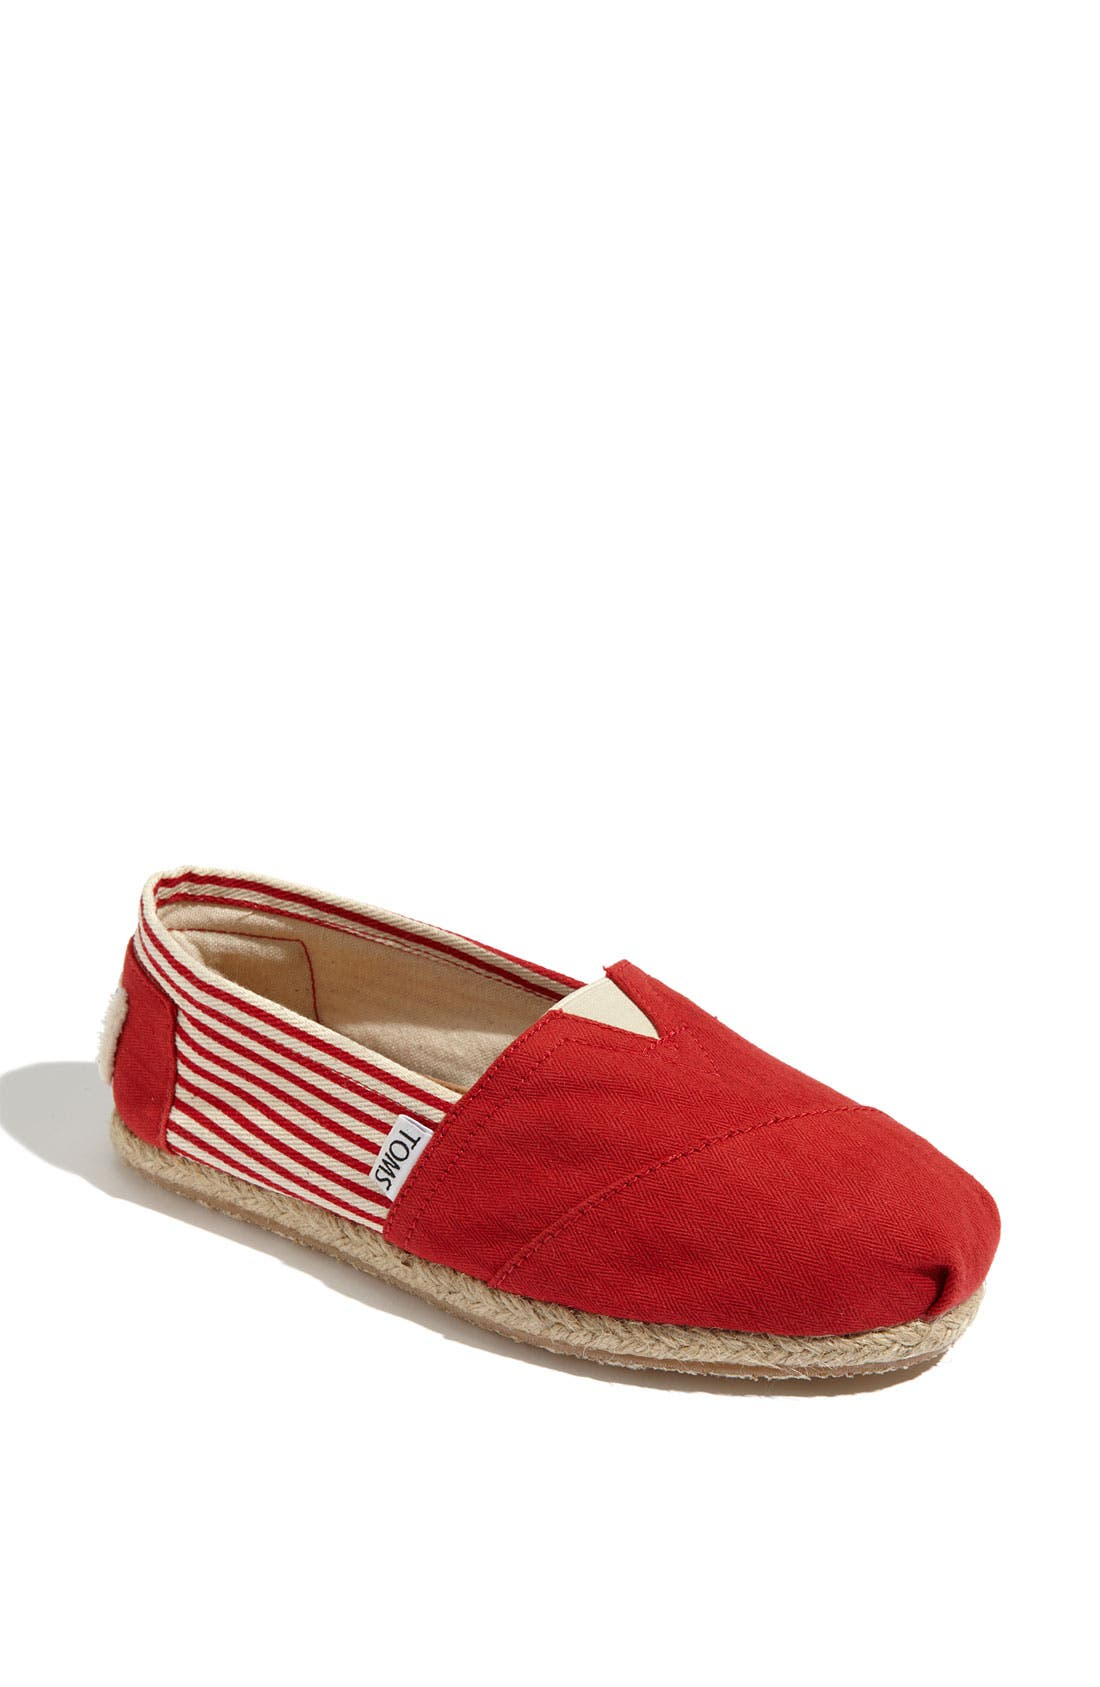 Alternate Image 1 Selected - TOMS 'Classic - University' Slip-On (Women)